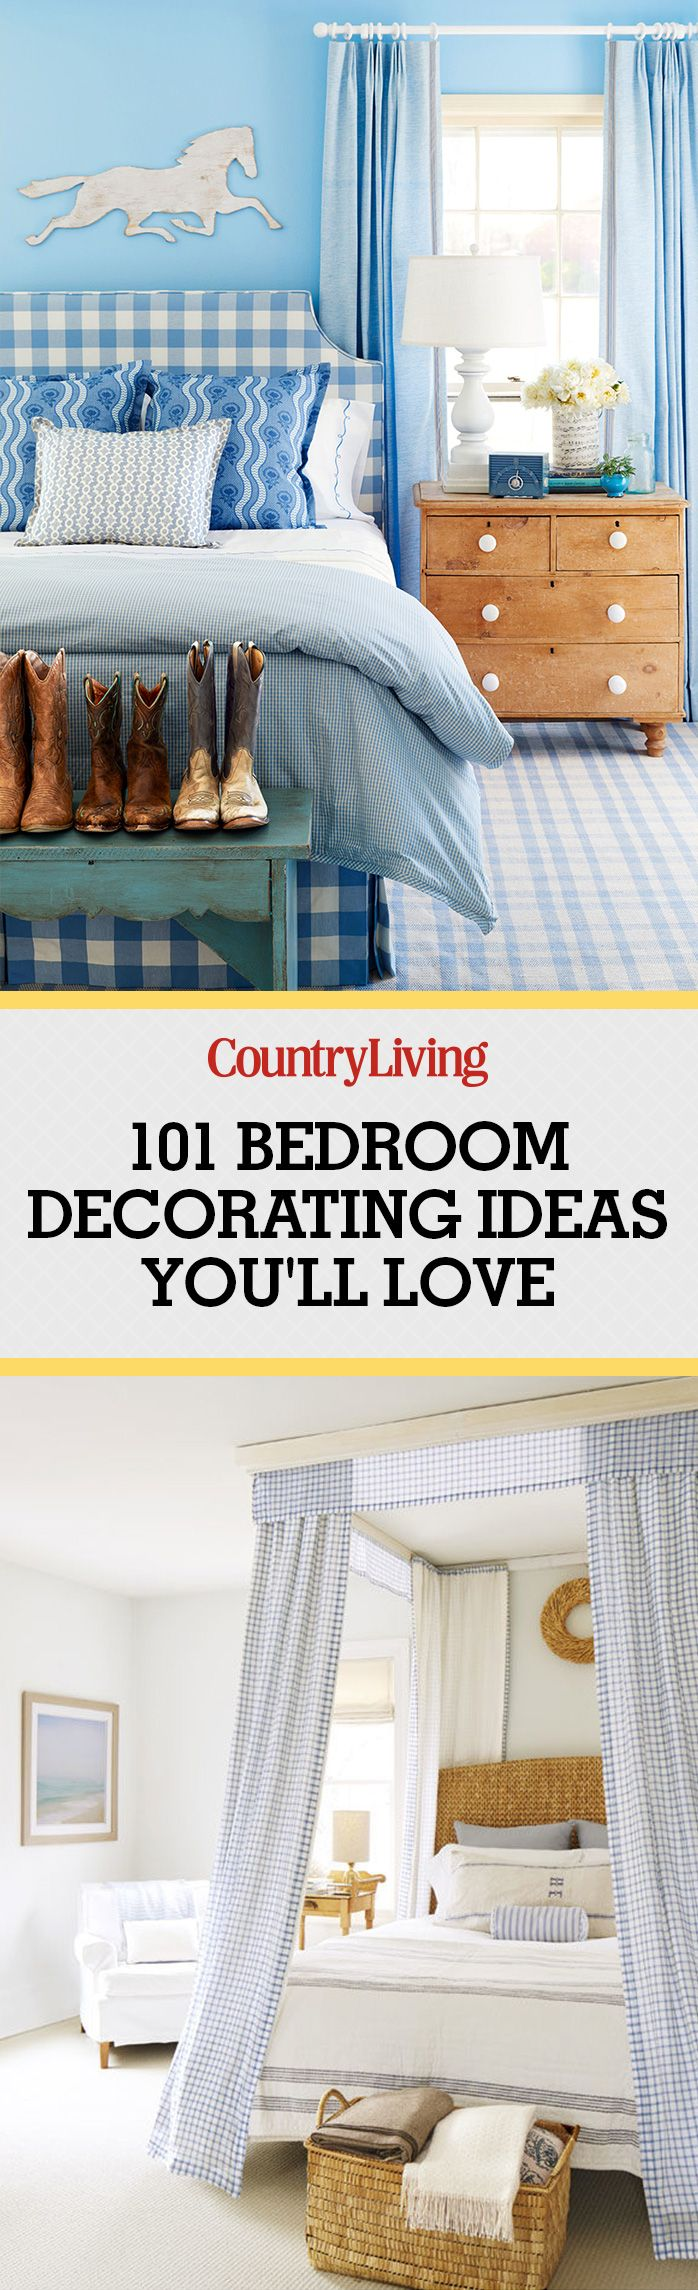 100+ Bedroom Decorating Ideas in 2017 - Designs for Beautiful Bedrooms